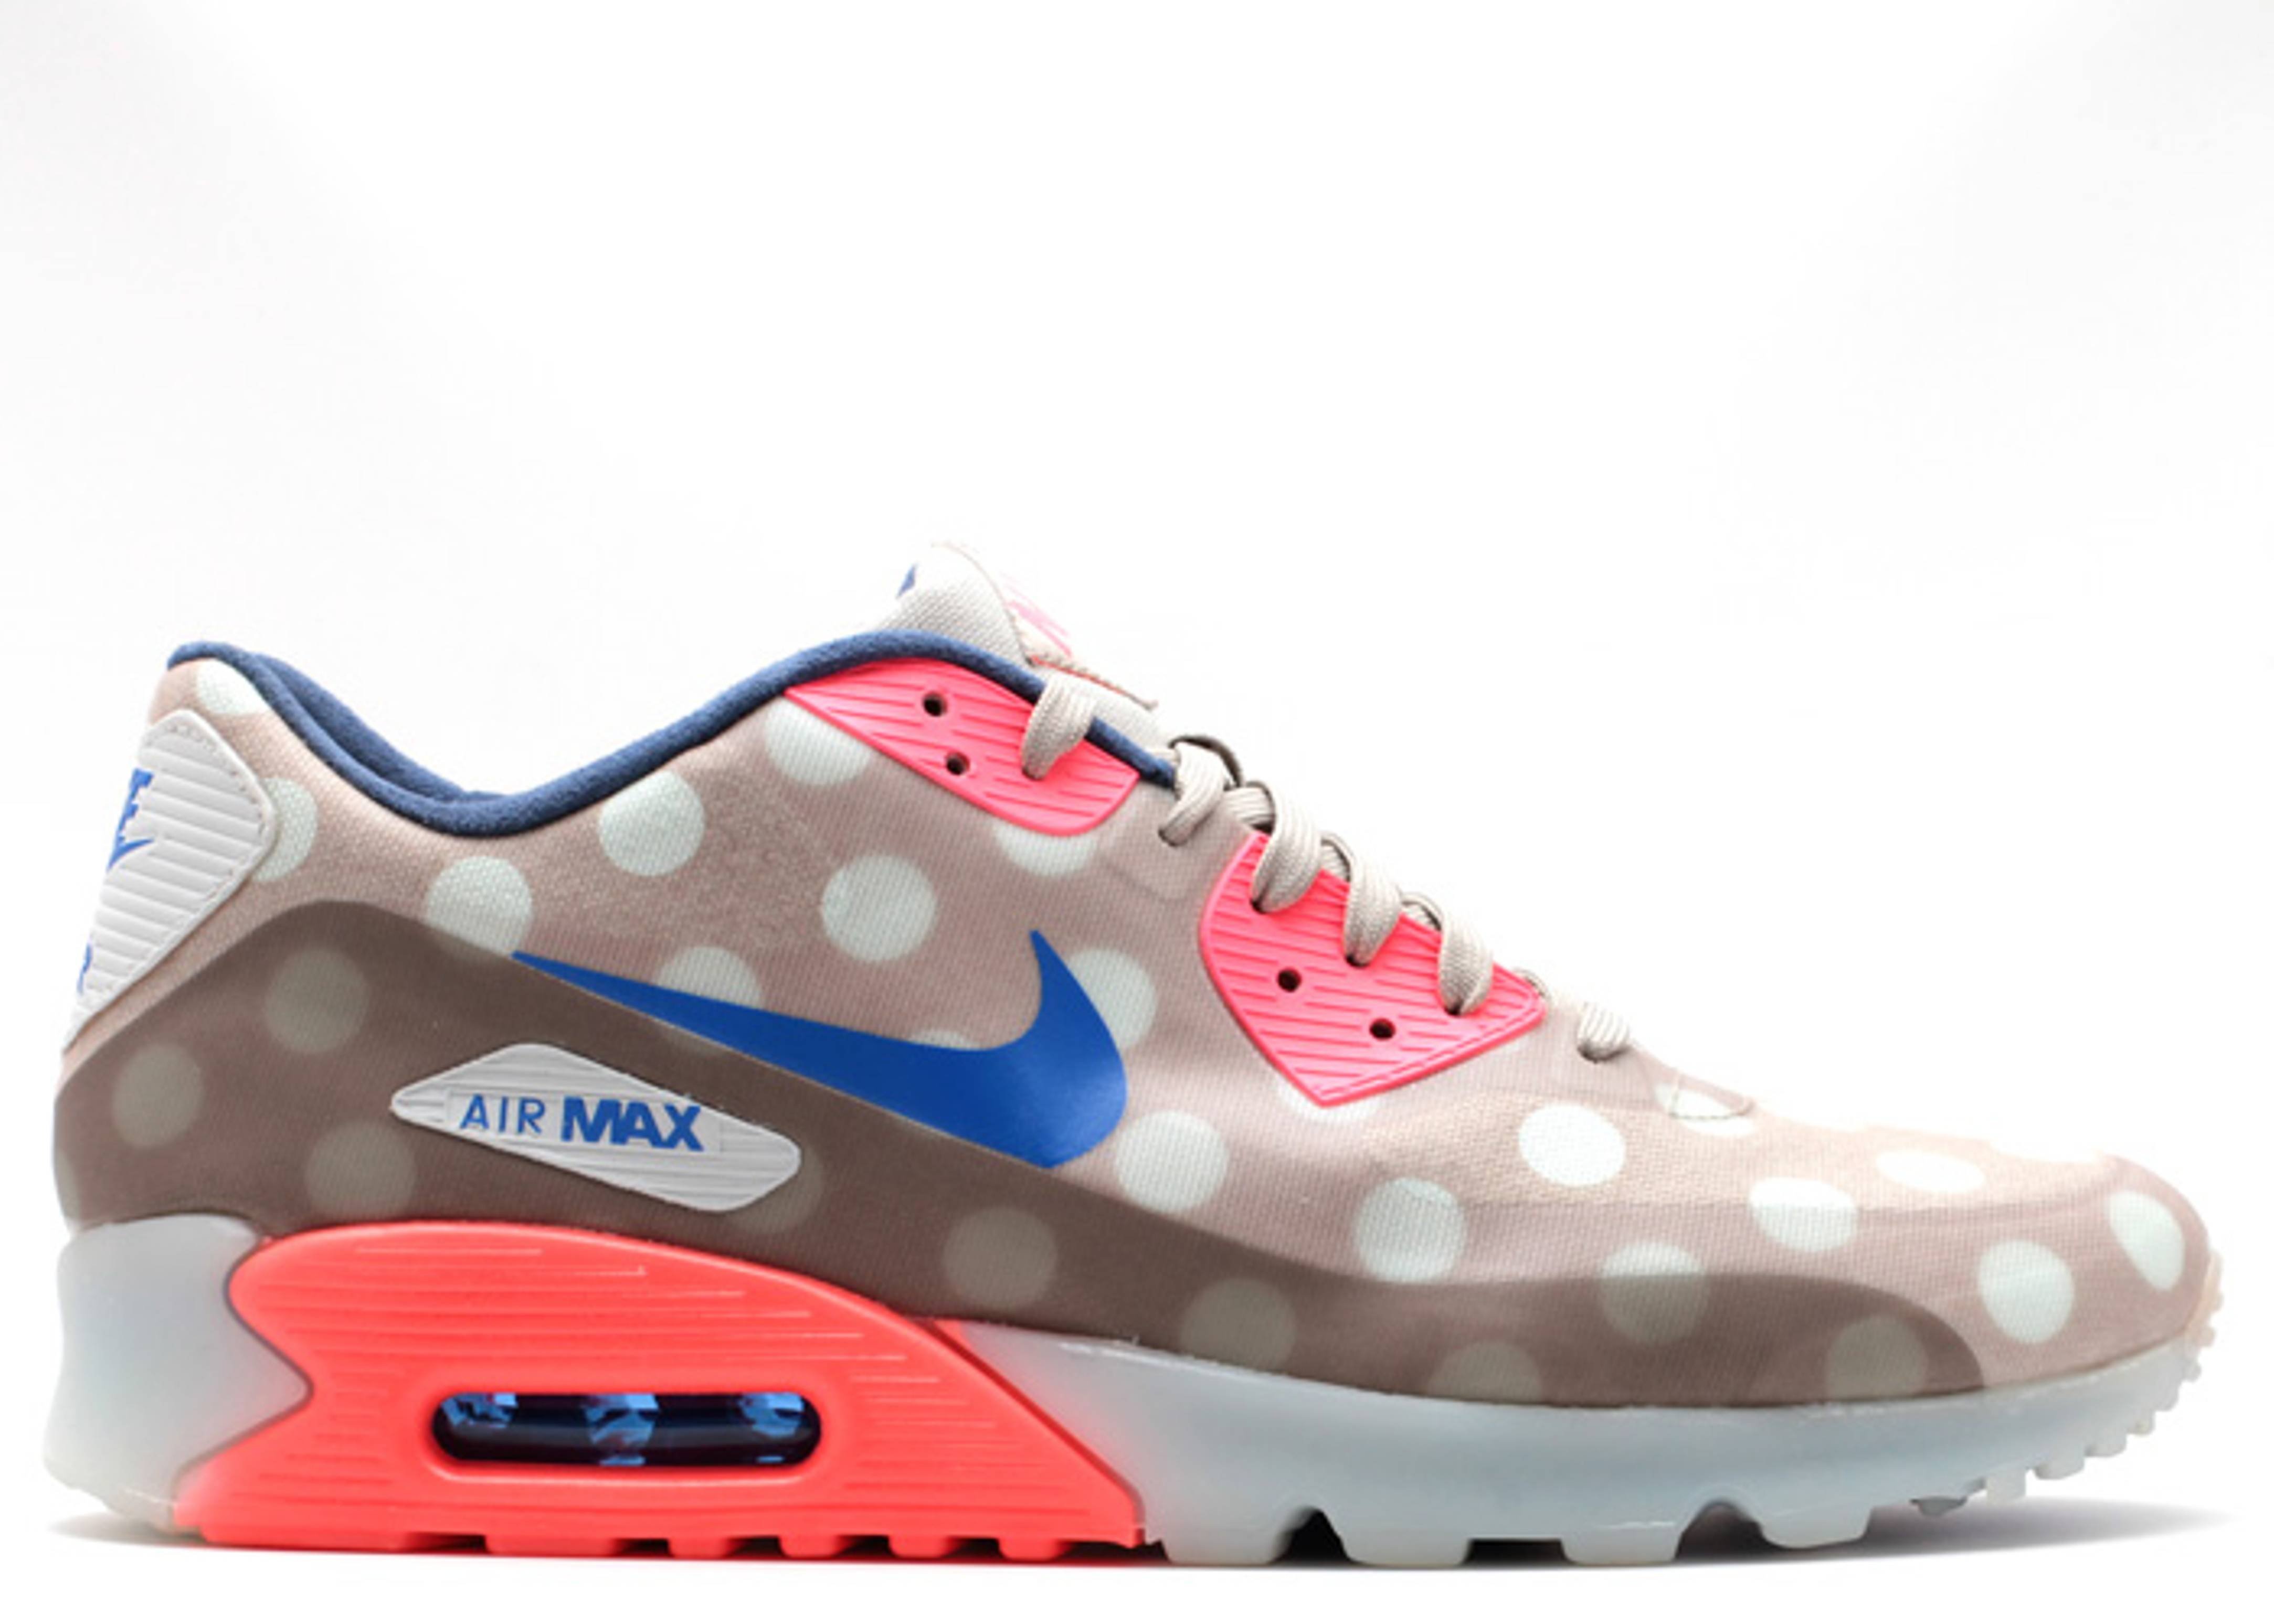 new style 87f1a bf89d best price air max 90 ice city qs nyc nike 667635 001 clssc stn hypr cblt